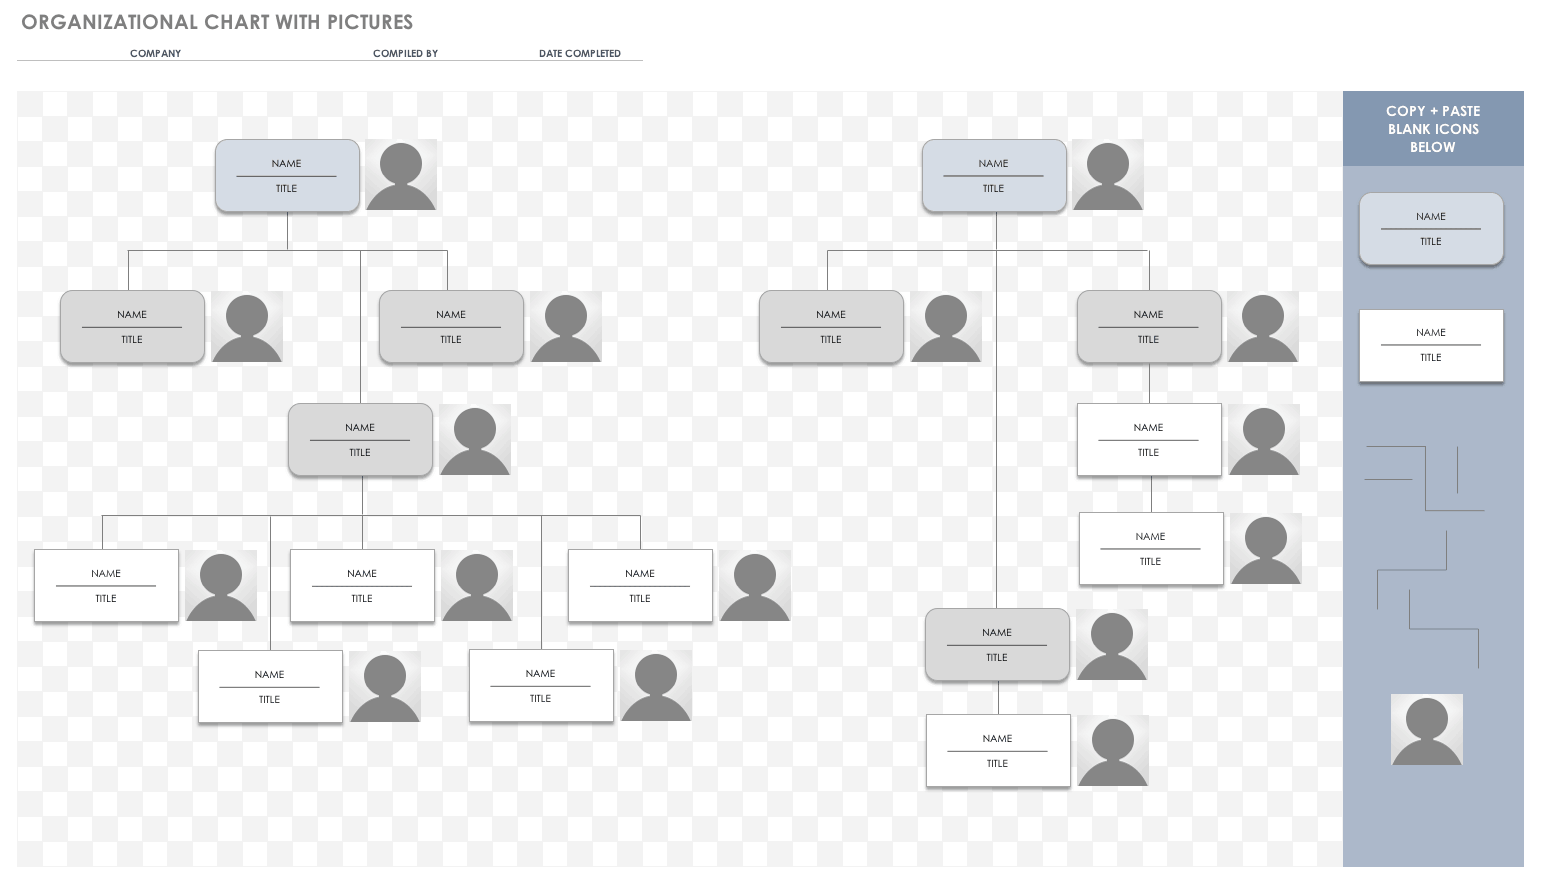 Horizontal Org Chart Template With Pictures